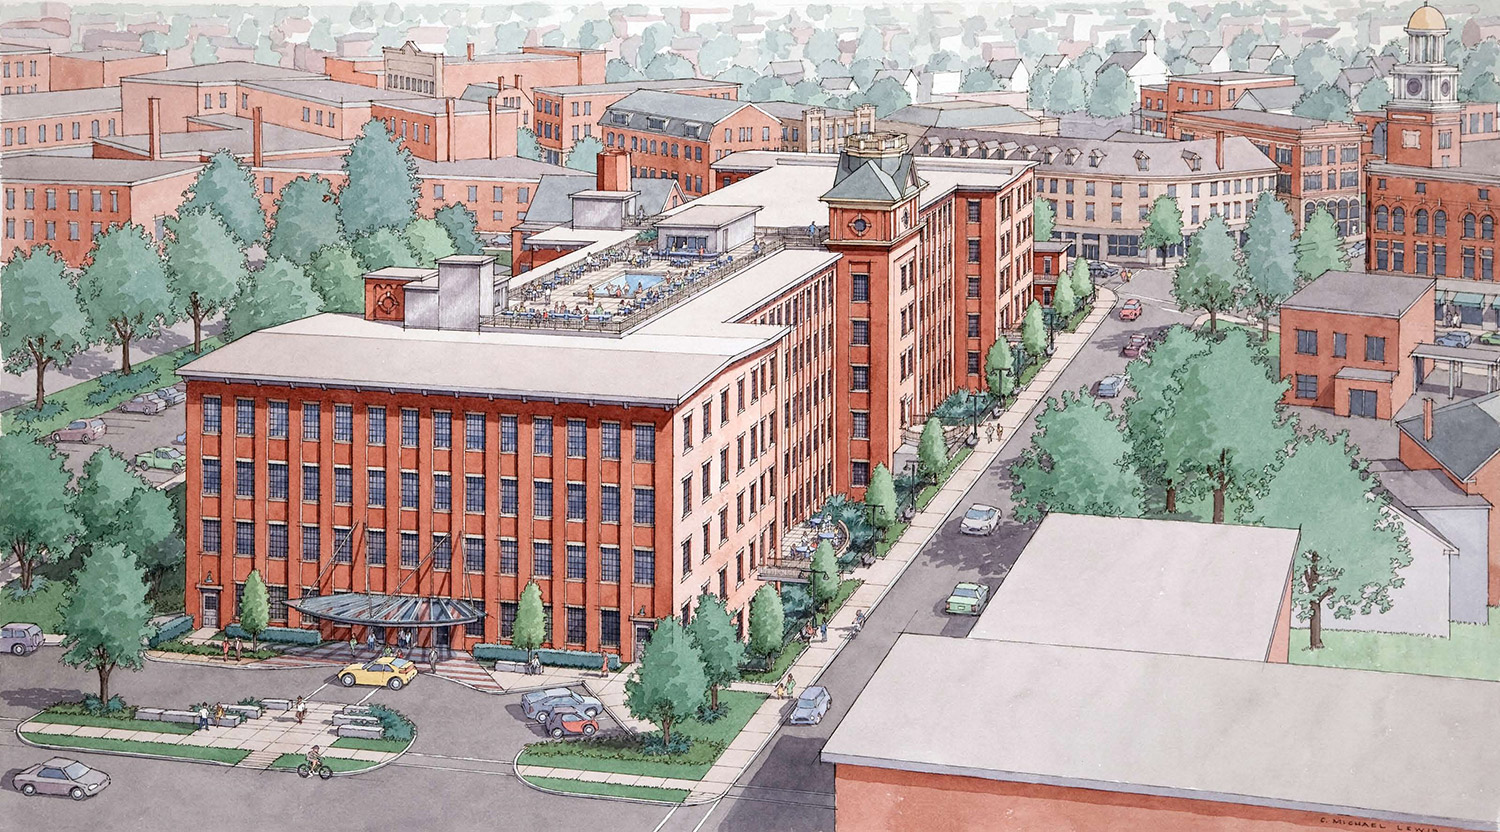 The development of Biddeford's Lincoln Mill will be expanded to include 181 market-rate residential apartments. Courtesy photo